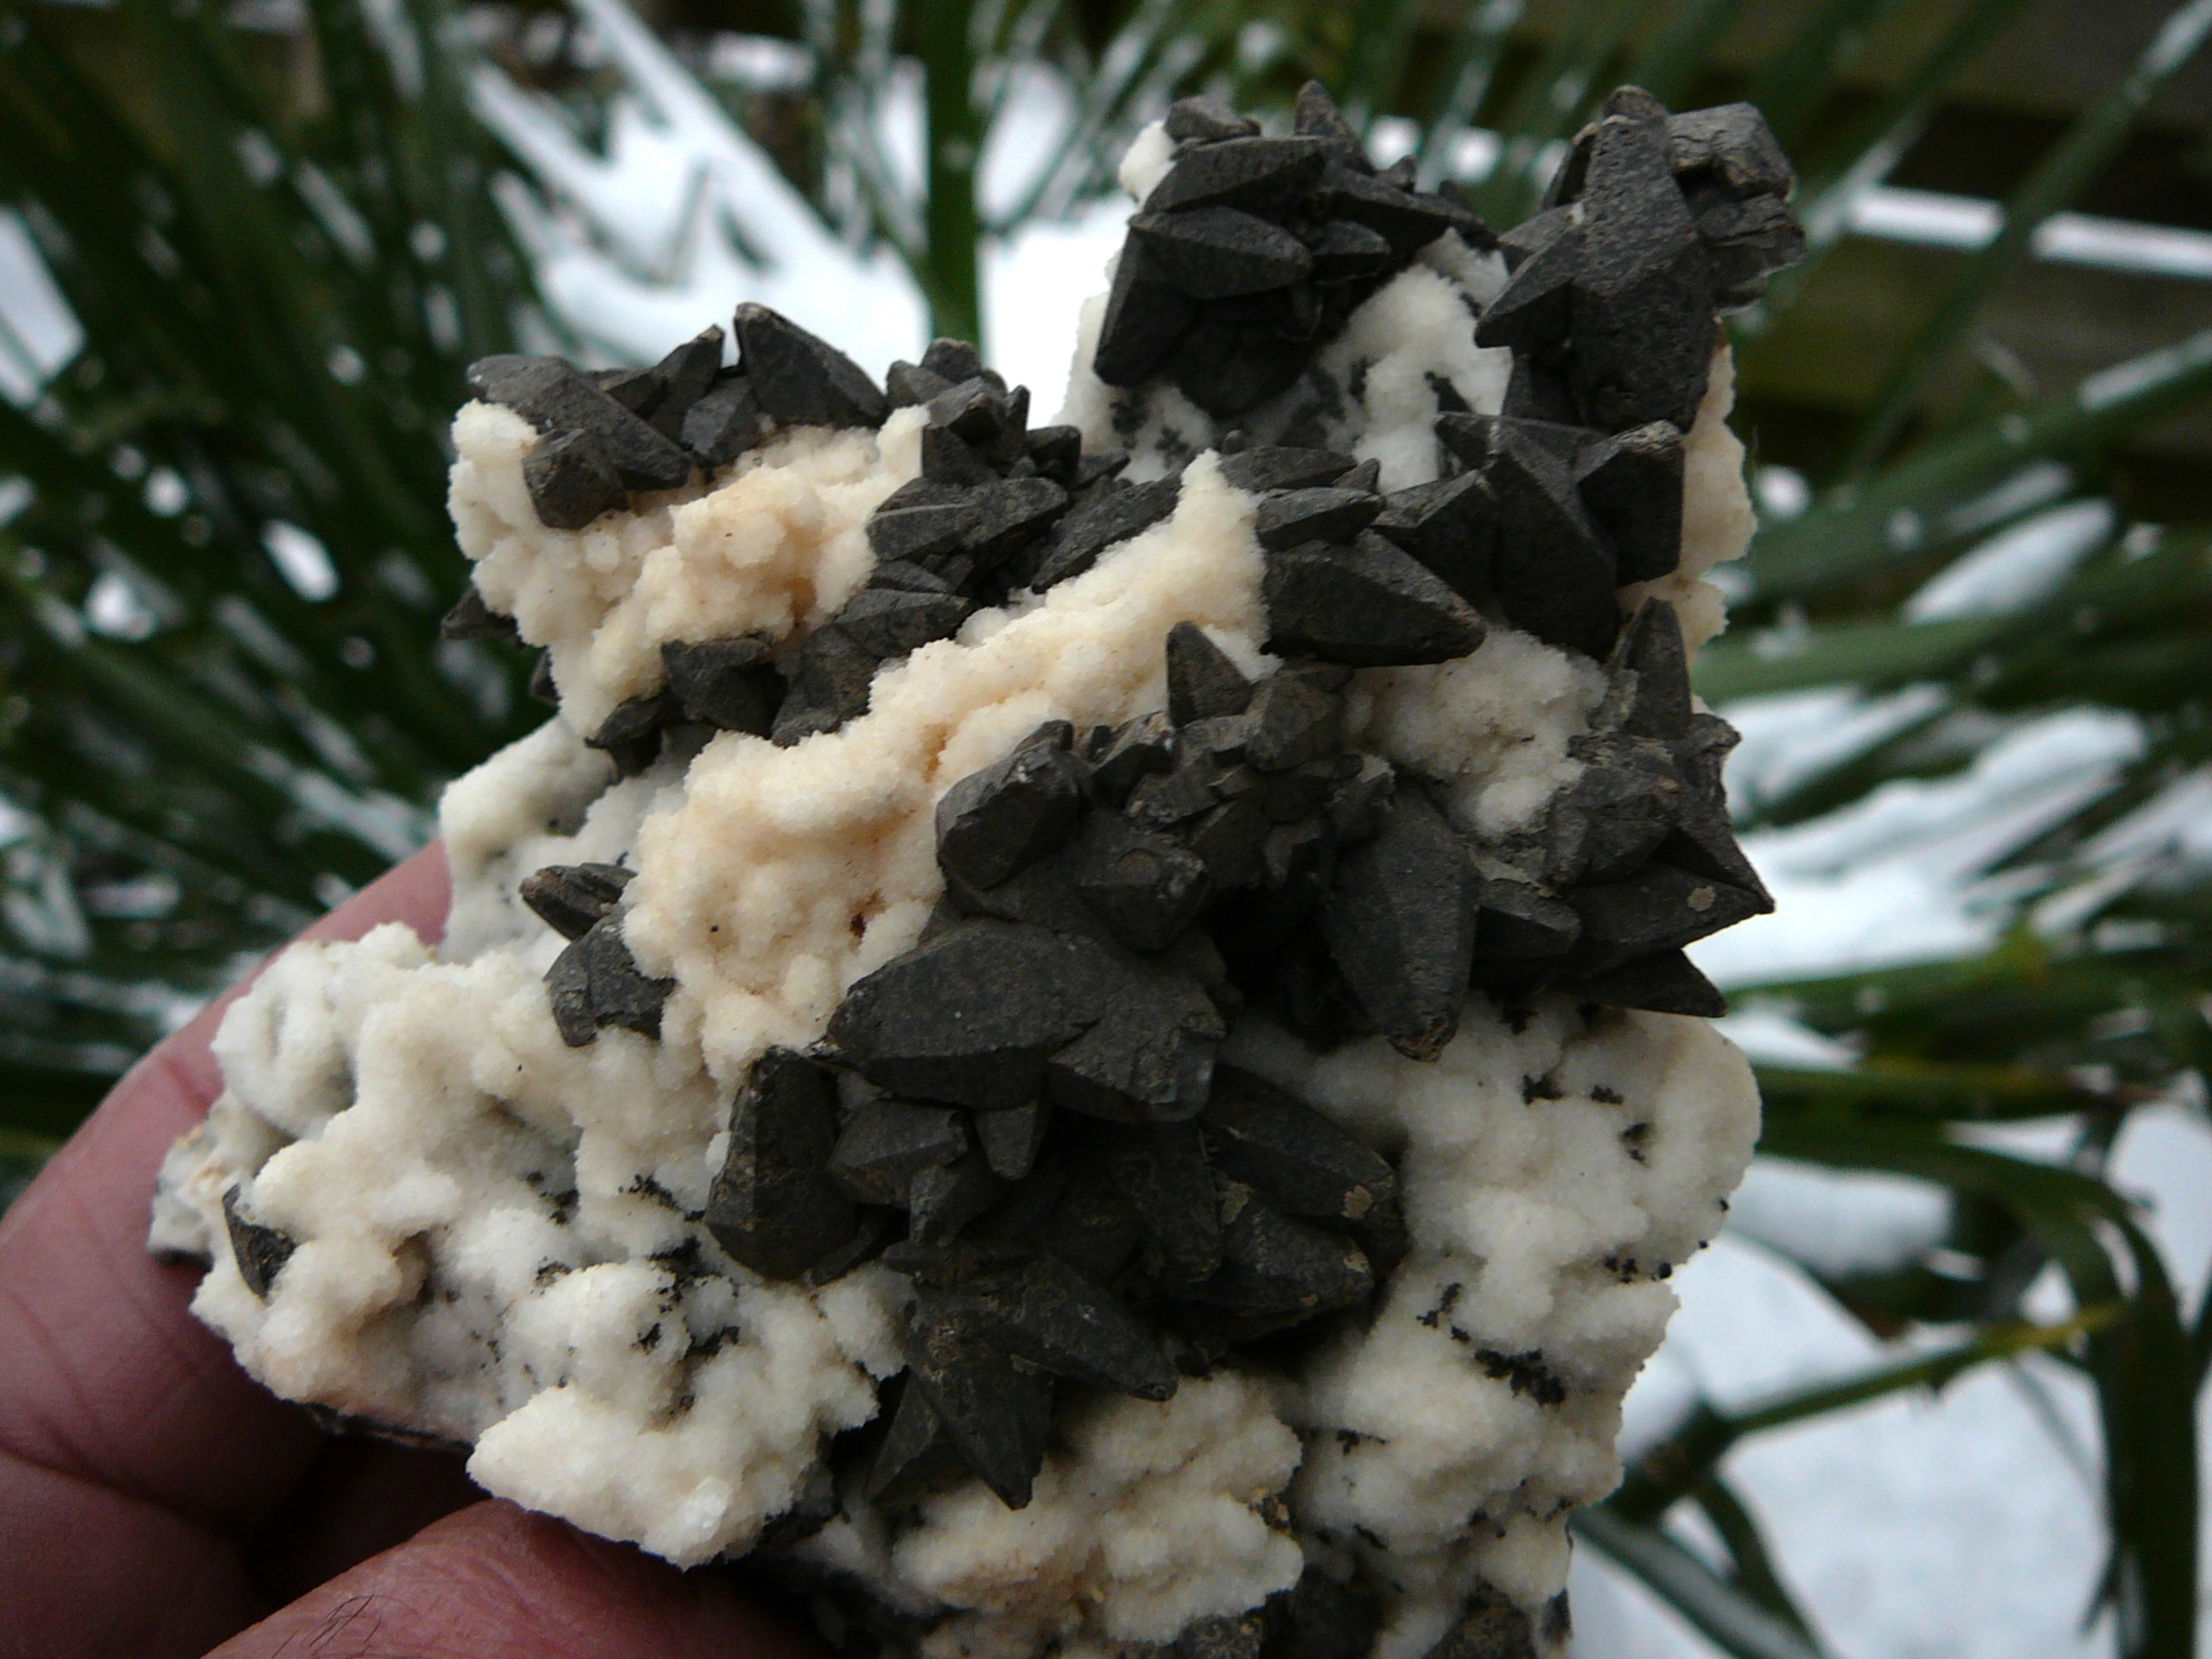 Almost black calcite